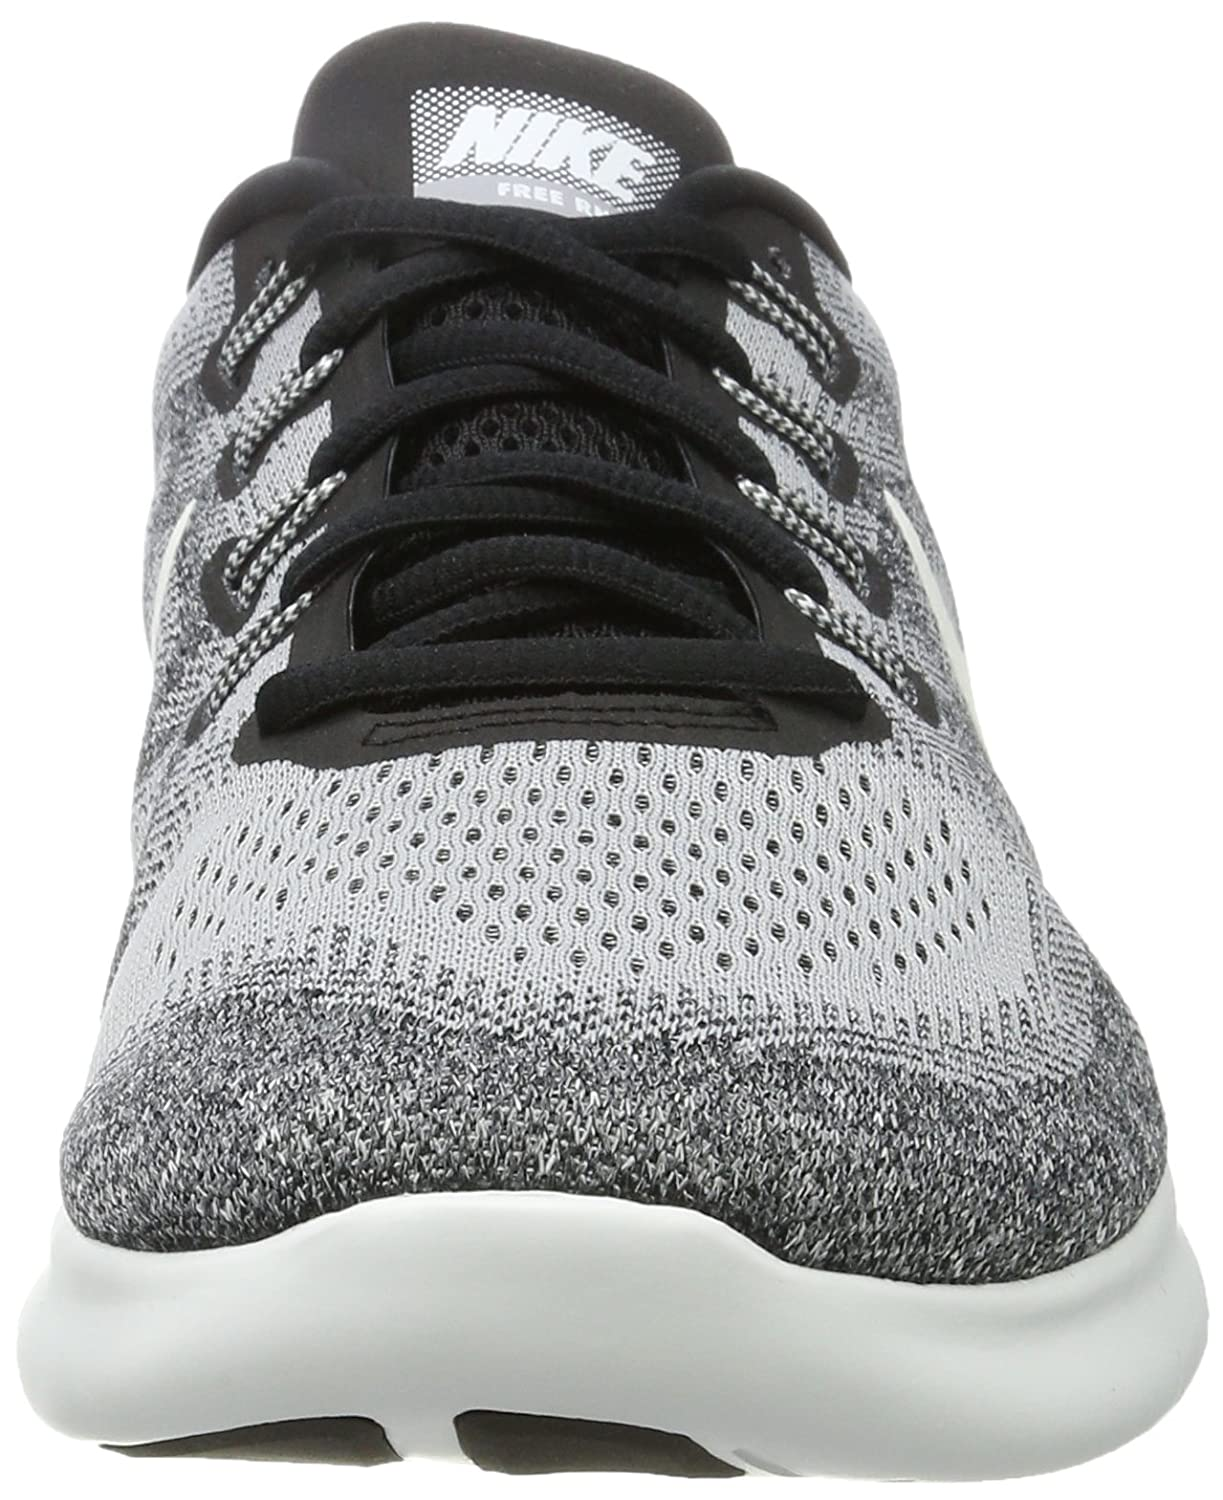 Buy 2019 Nike Free 4.0 Print BlackCool GreyUniversity Red